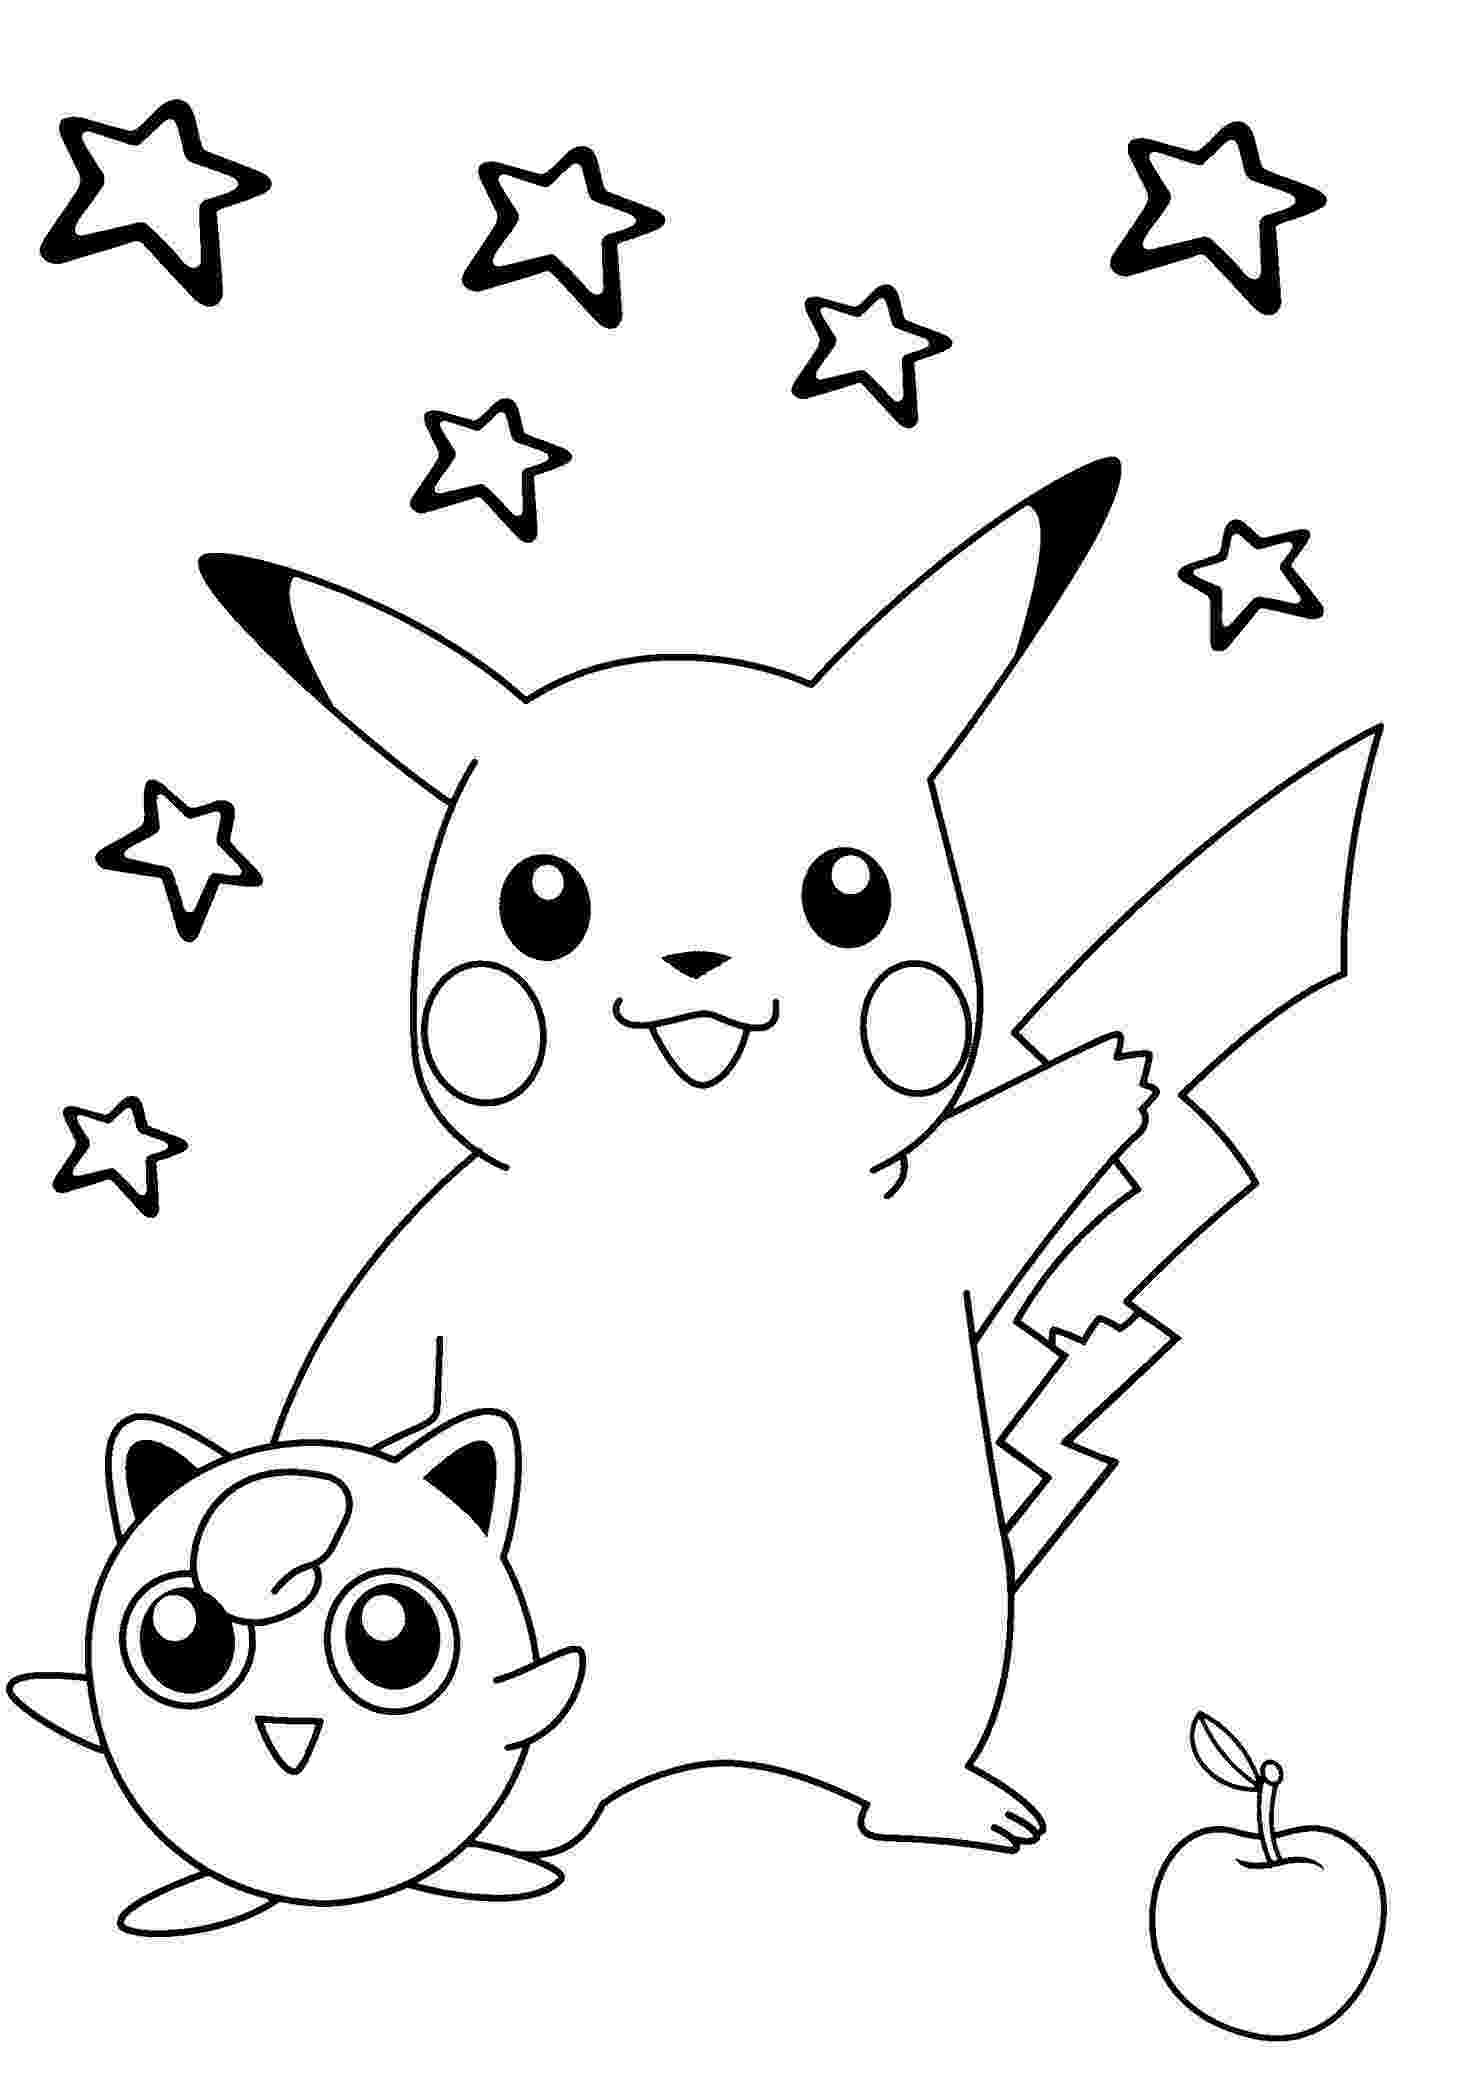 coloring pages pdf free pokemon coloring book pdf from the thousands of pages coloring pdf